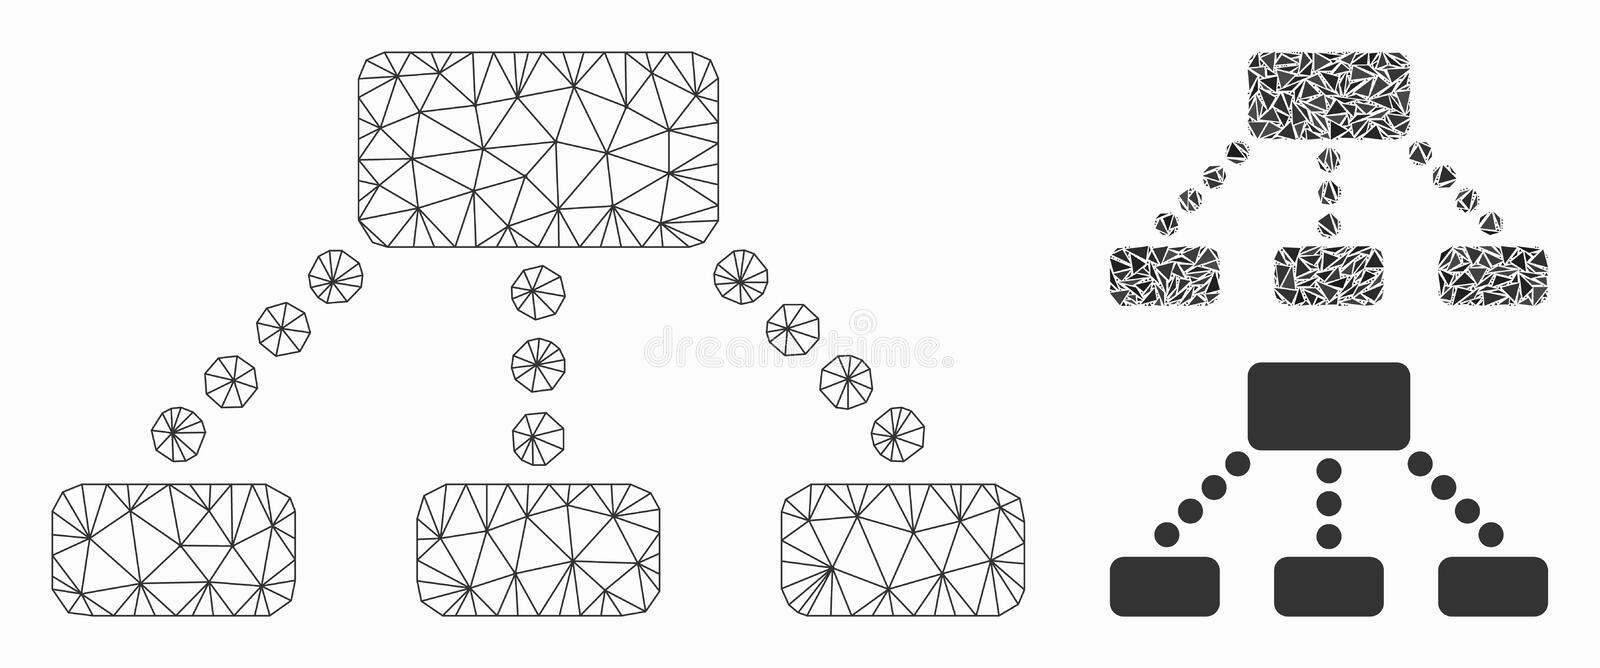 Hierarchy Vector Mesh Network Model and Triangle Mosaic Icon vector illustration